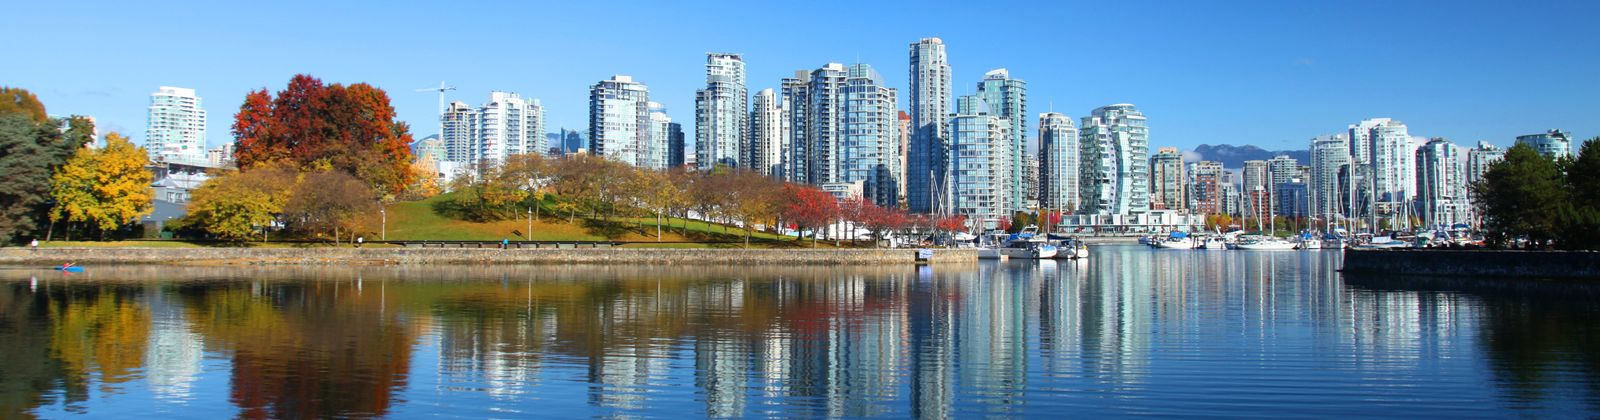 Top 15 attractions and things to do in Vancouver